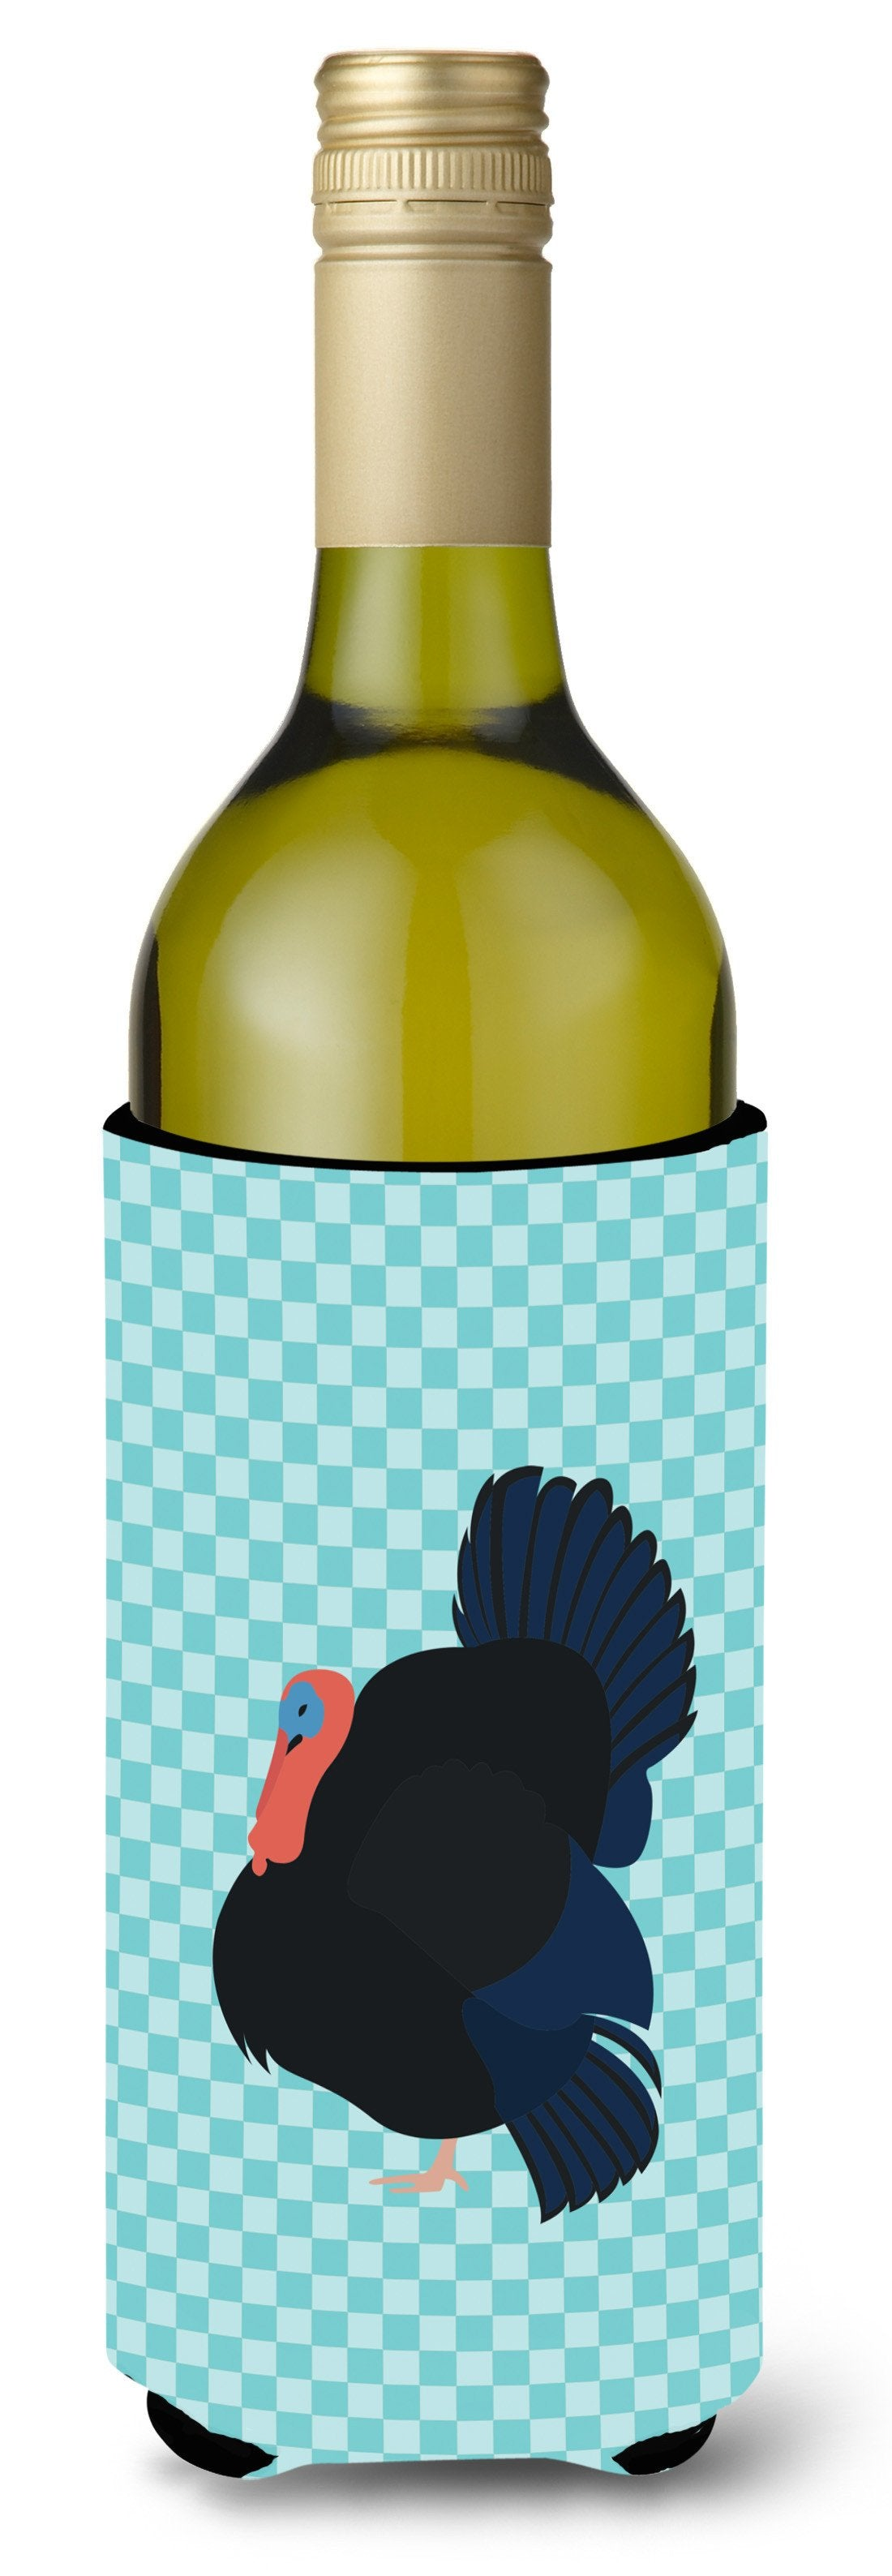 Norfolk Black Turkey Blue Check Wine Bottle Beverge Insulator Hugger BB8159LITERK by Caroline's Treasures